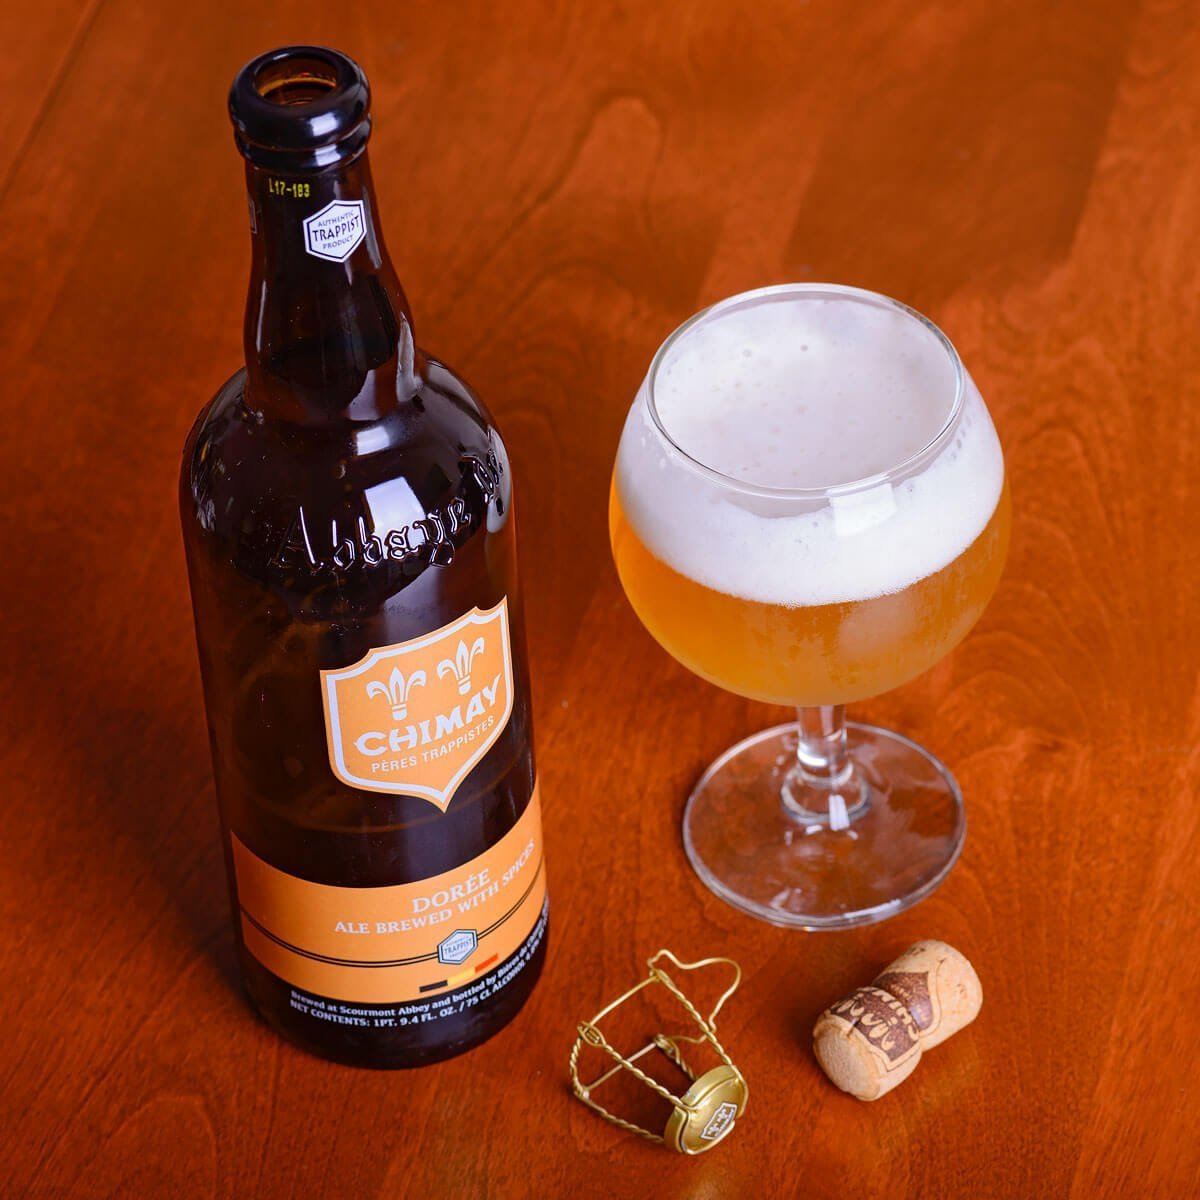 Dorée (also known as Chimay Gold) is a Belgian Pale Ale brewed by Bières de Chimay.